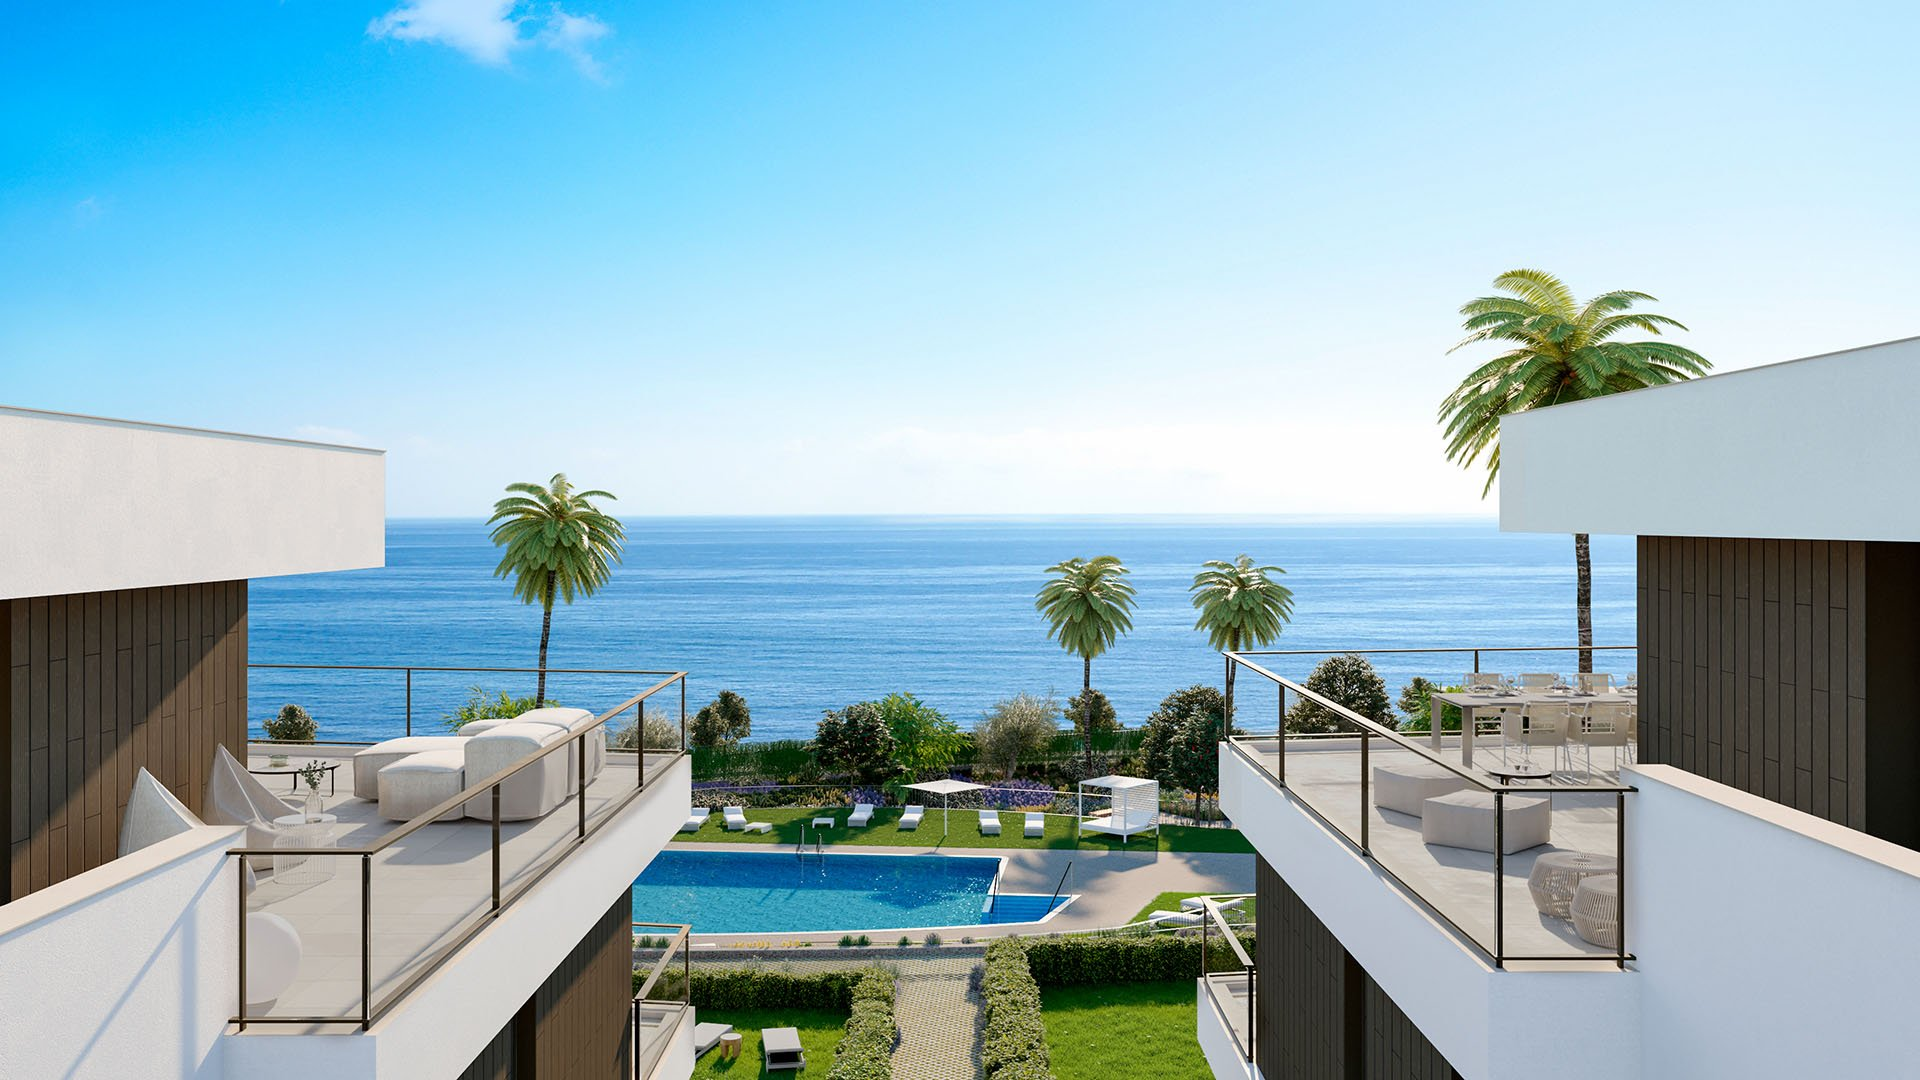 La Sabina: Apartments in Casares within walking distance from the beach